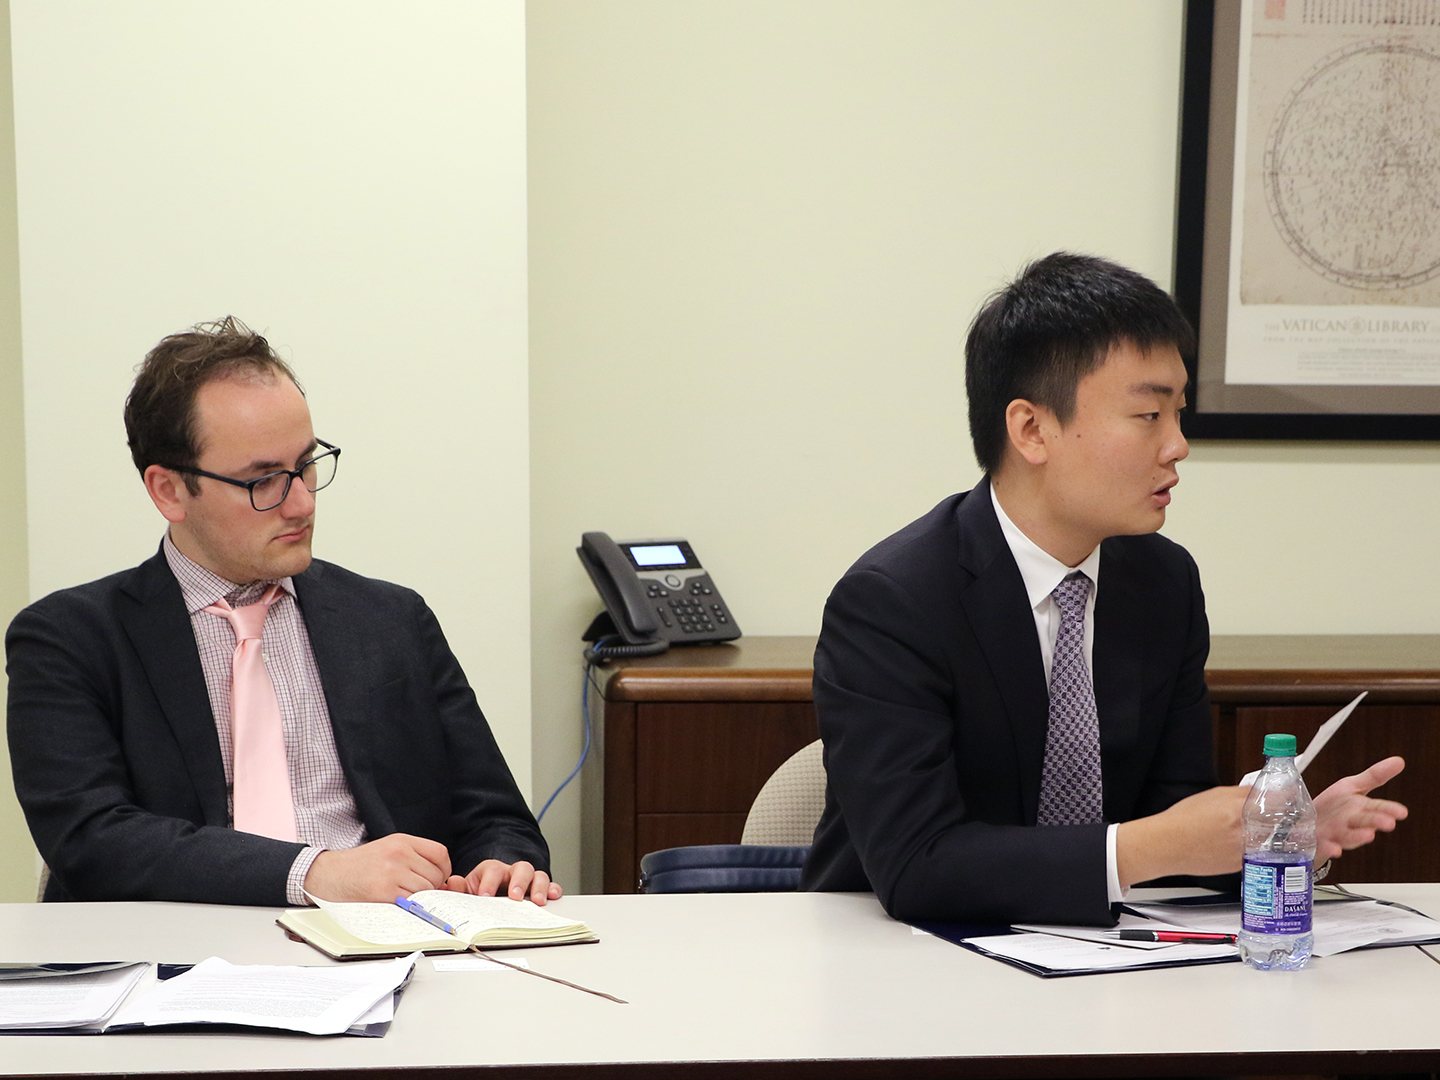 Student Fellow Ruihan Huang asking Craig Allen about China's business development